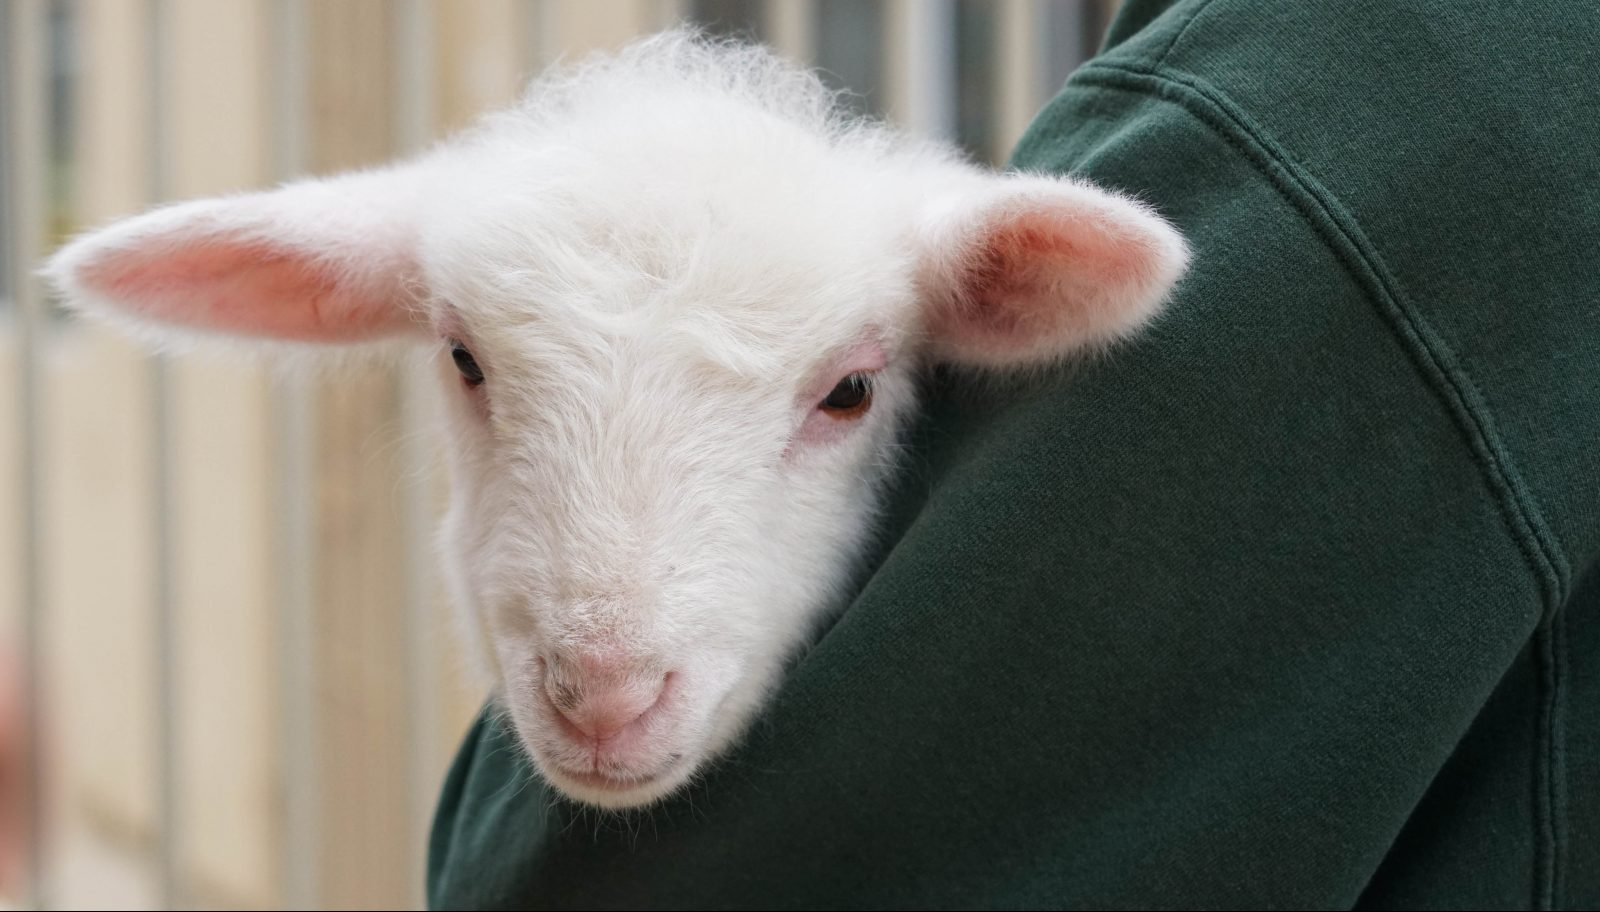 Cute to the Max: This Lamb is Melting Hearts - Farm Sanctuary